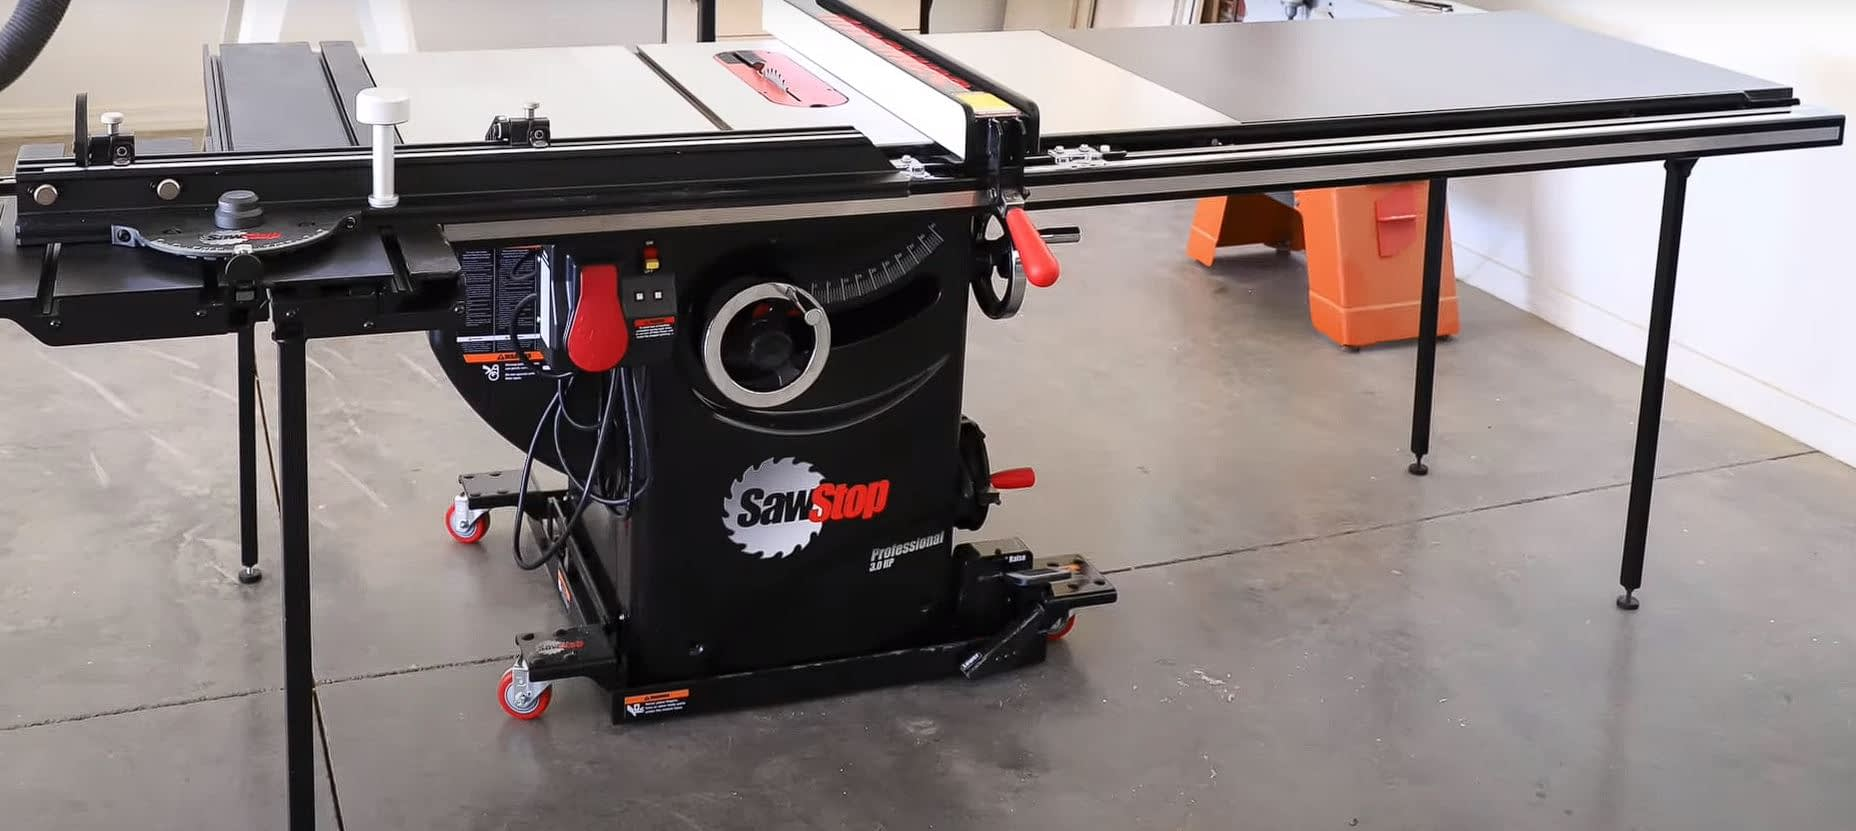 Sawstop 10-Inch Professional Cabinet Saw Review